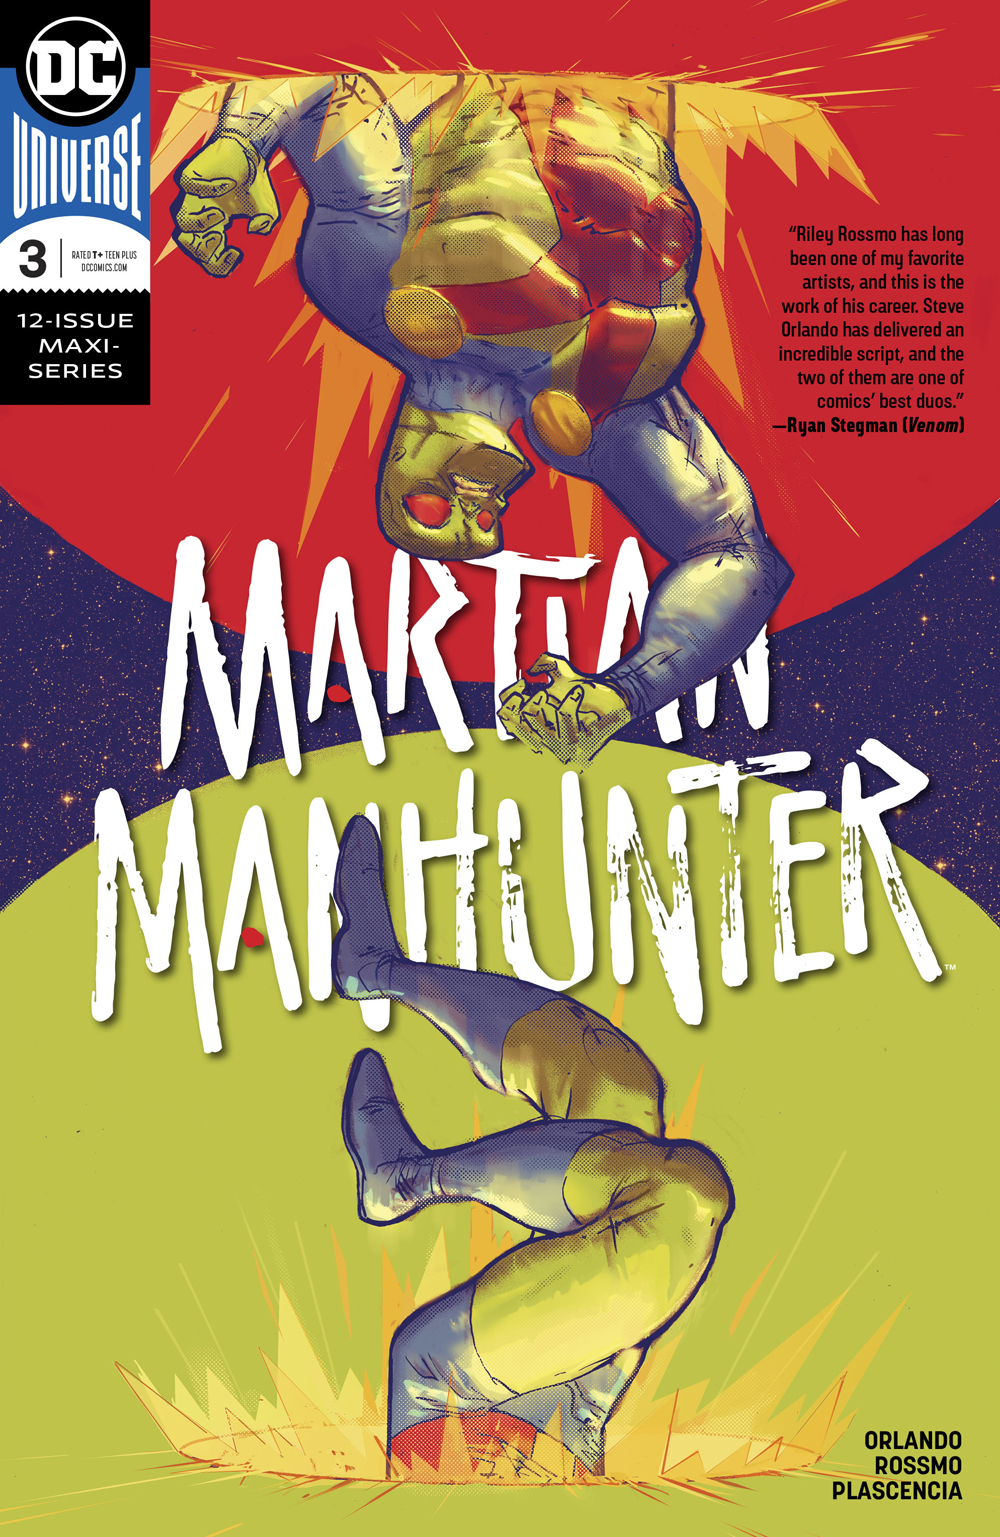 MARTIAN MANHUNTER #3 (OF 12)